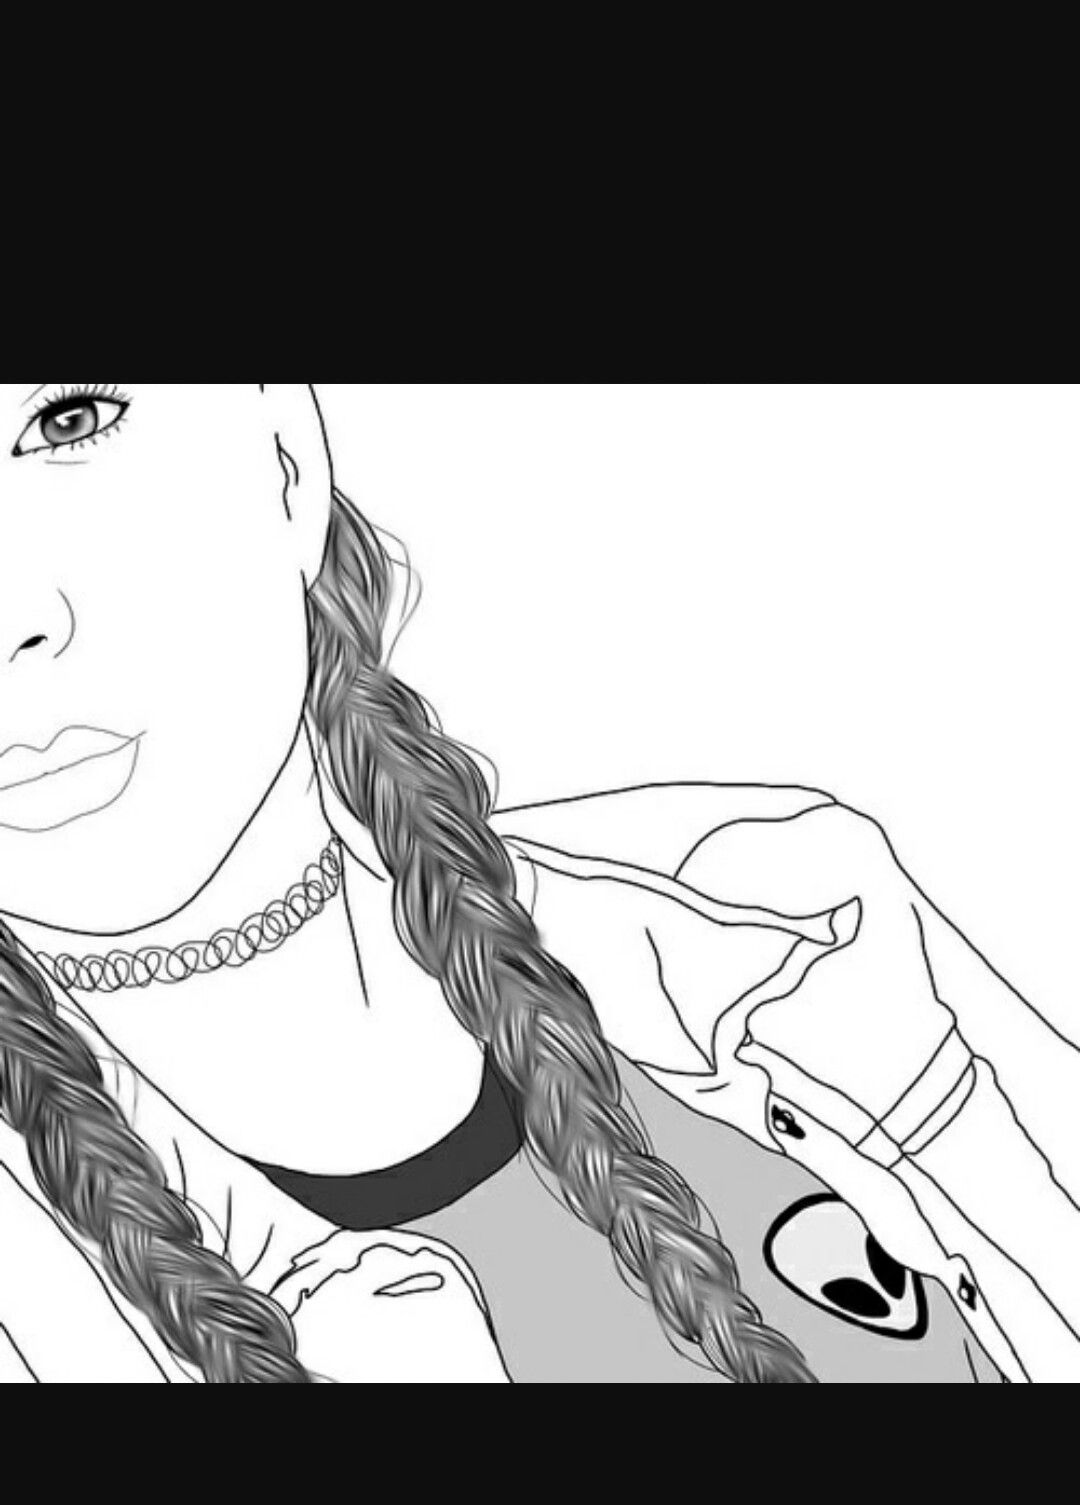 Pin By D Emma On Swag Tumblr Outline Tumblr Drawings